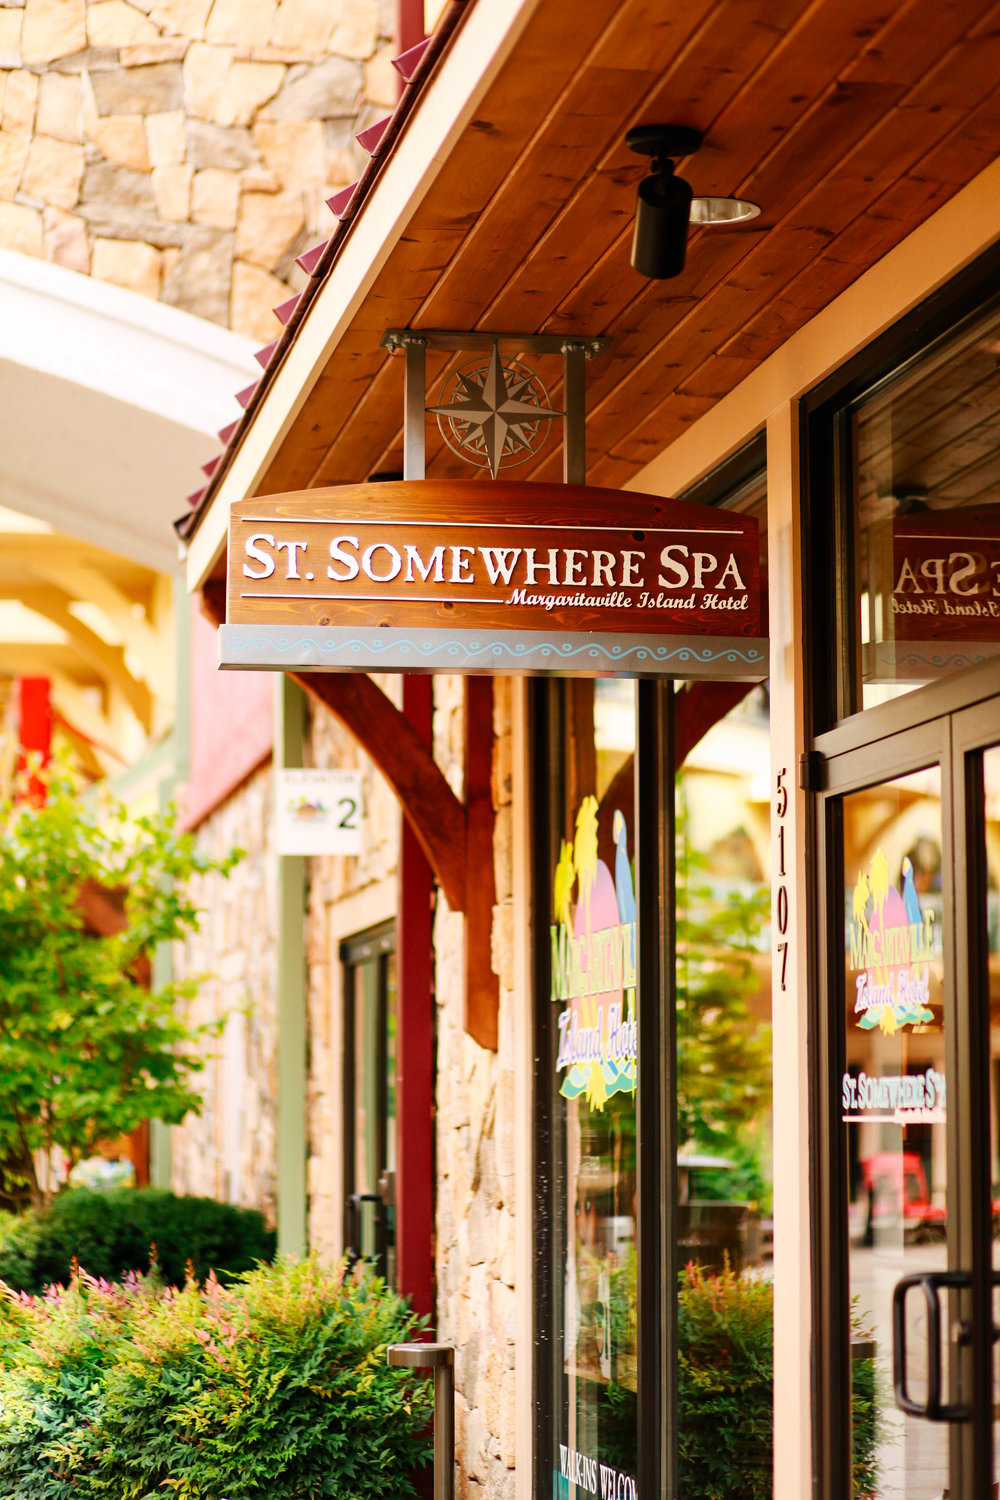 st somewhere spa pigeon forge margaritaville island hotel | MALLORIE OWENS